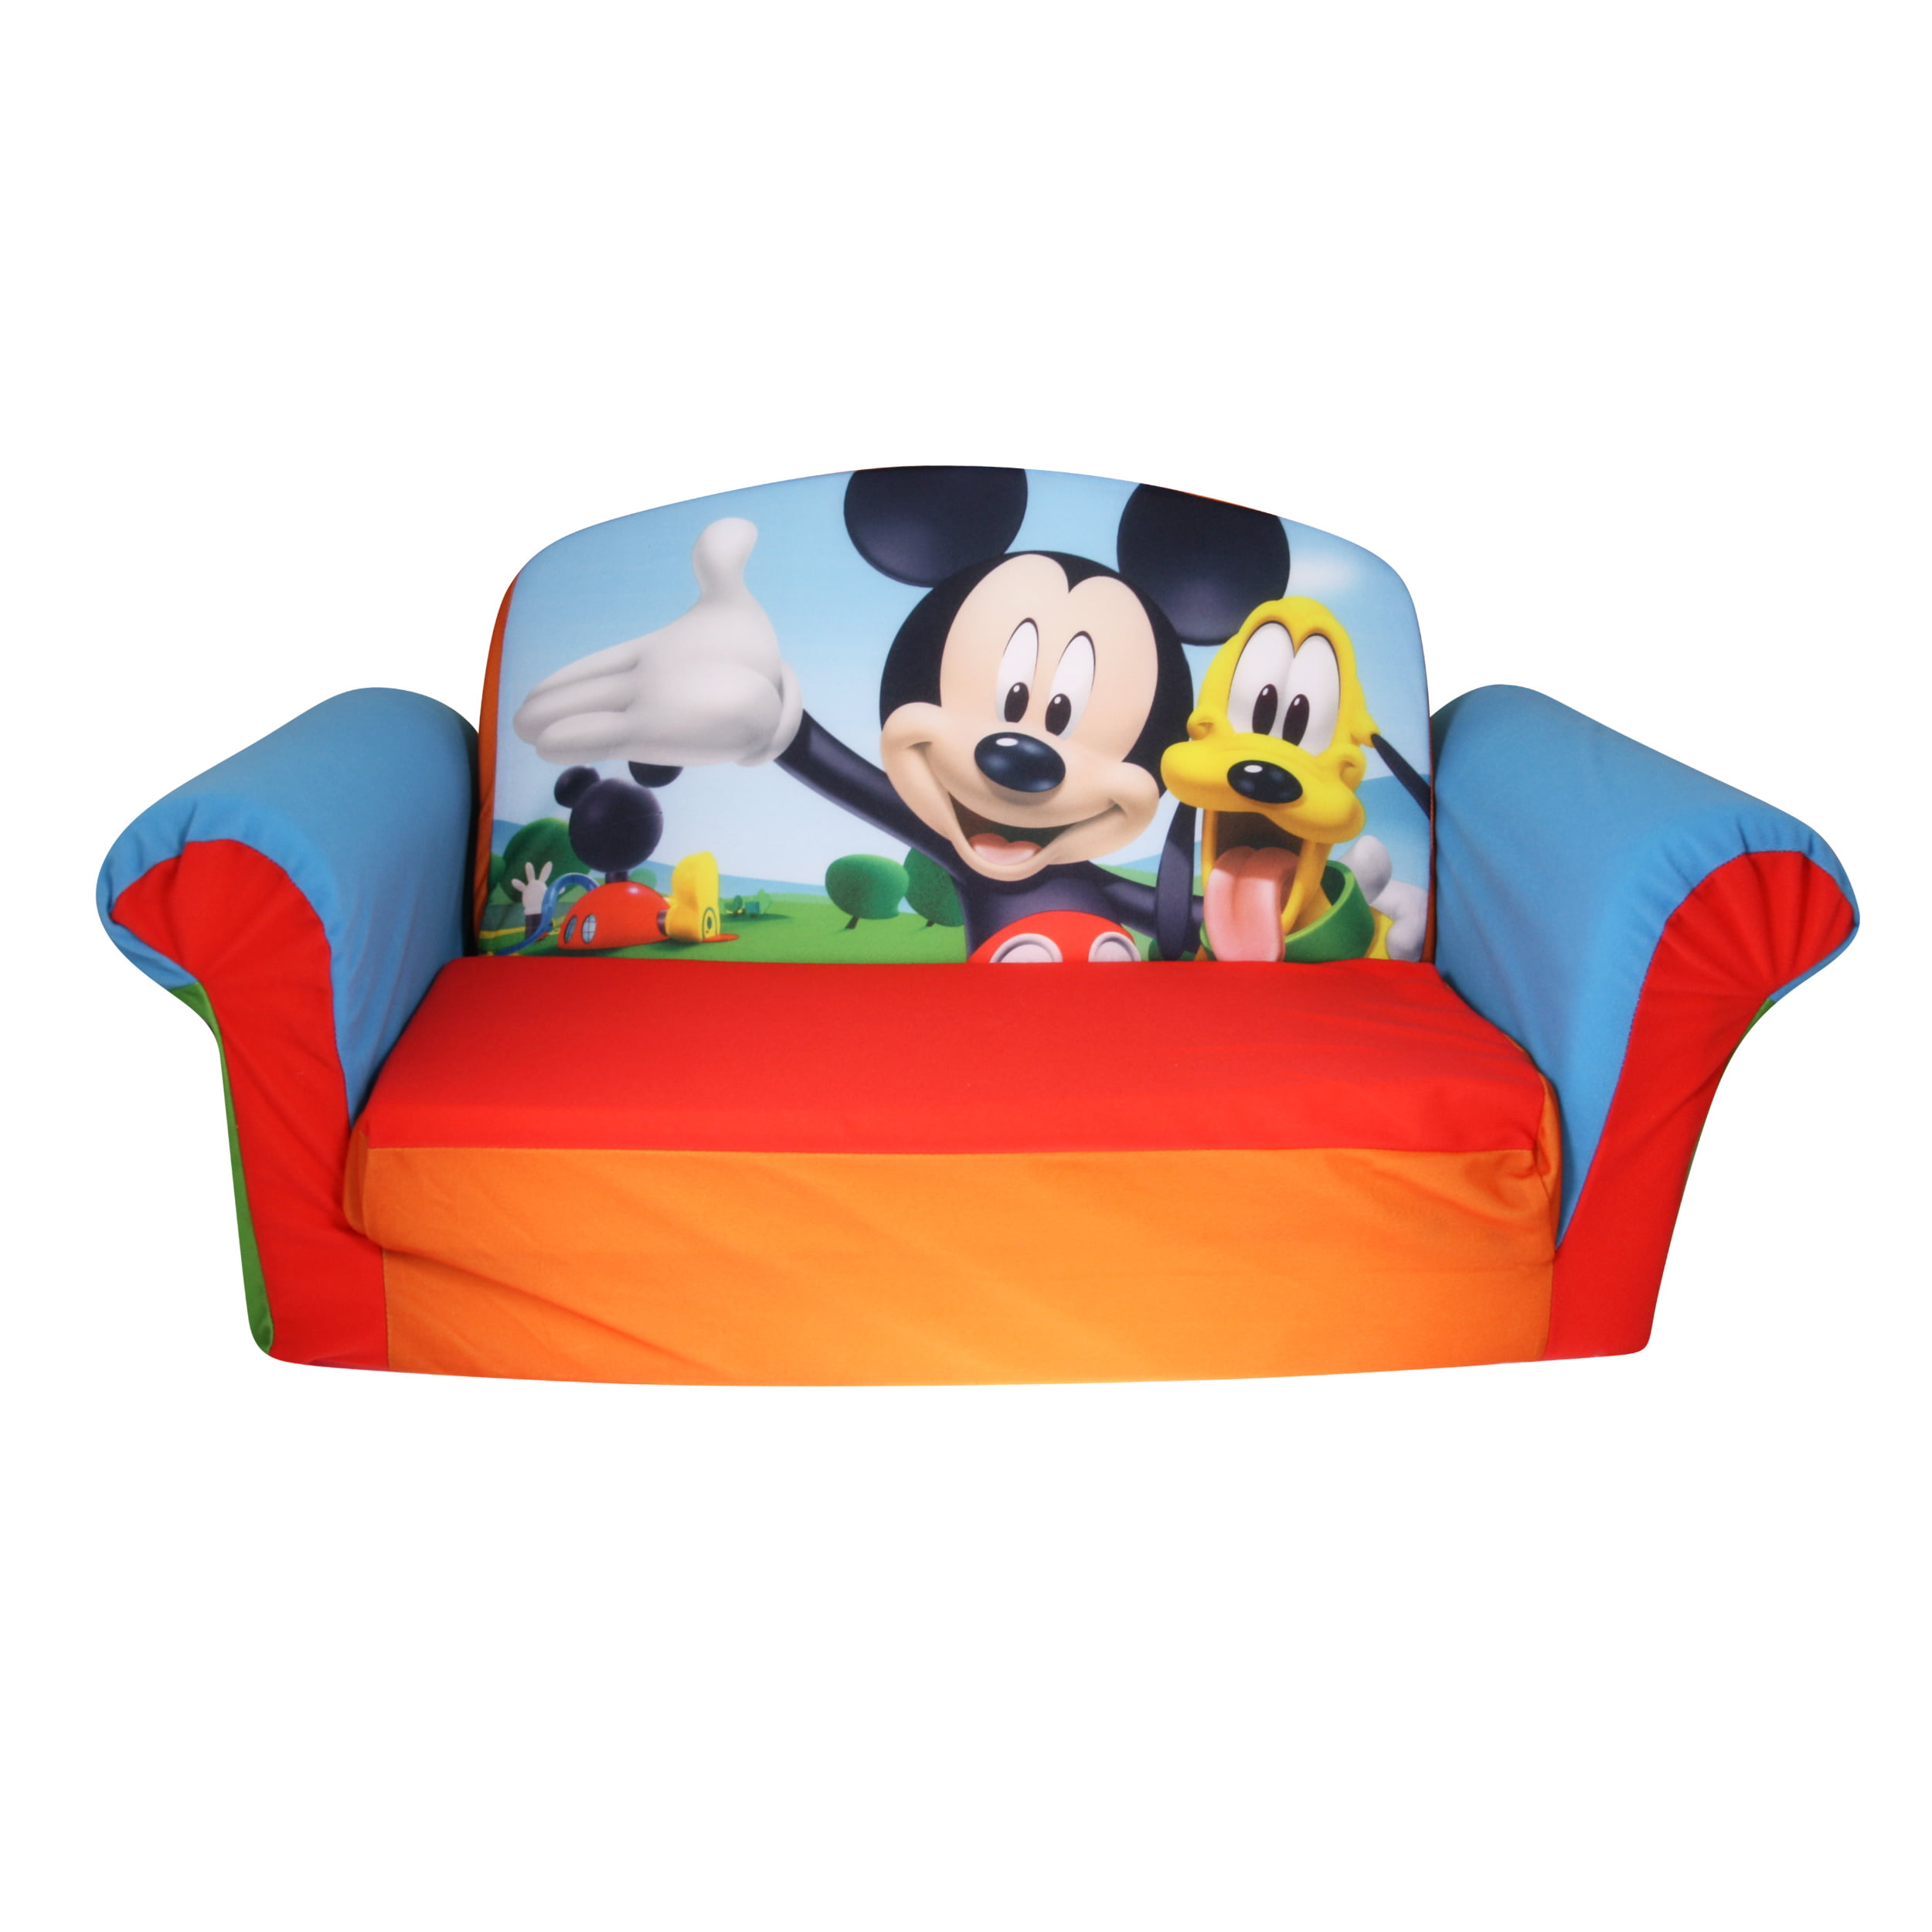 Marshmallow Furniture Children S 2 In 1 Flip Open Foam Sofa Disney Mickey Mouse Club House By Spin Master